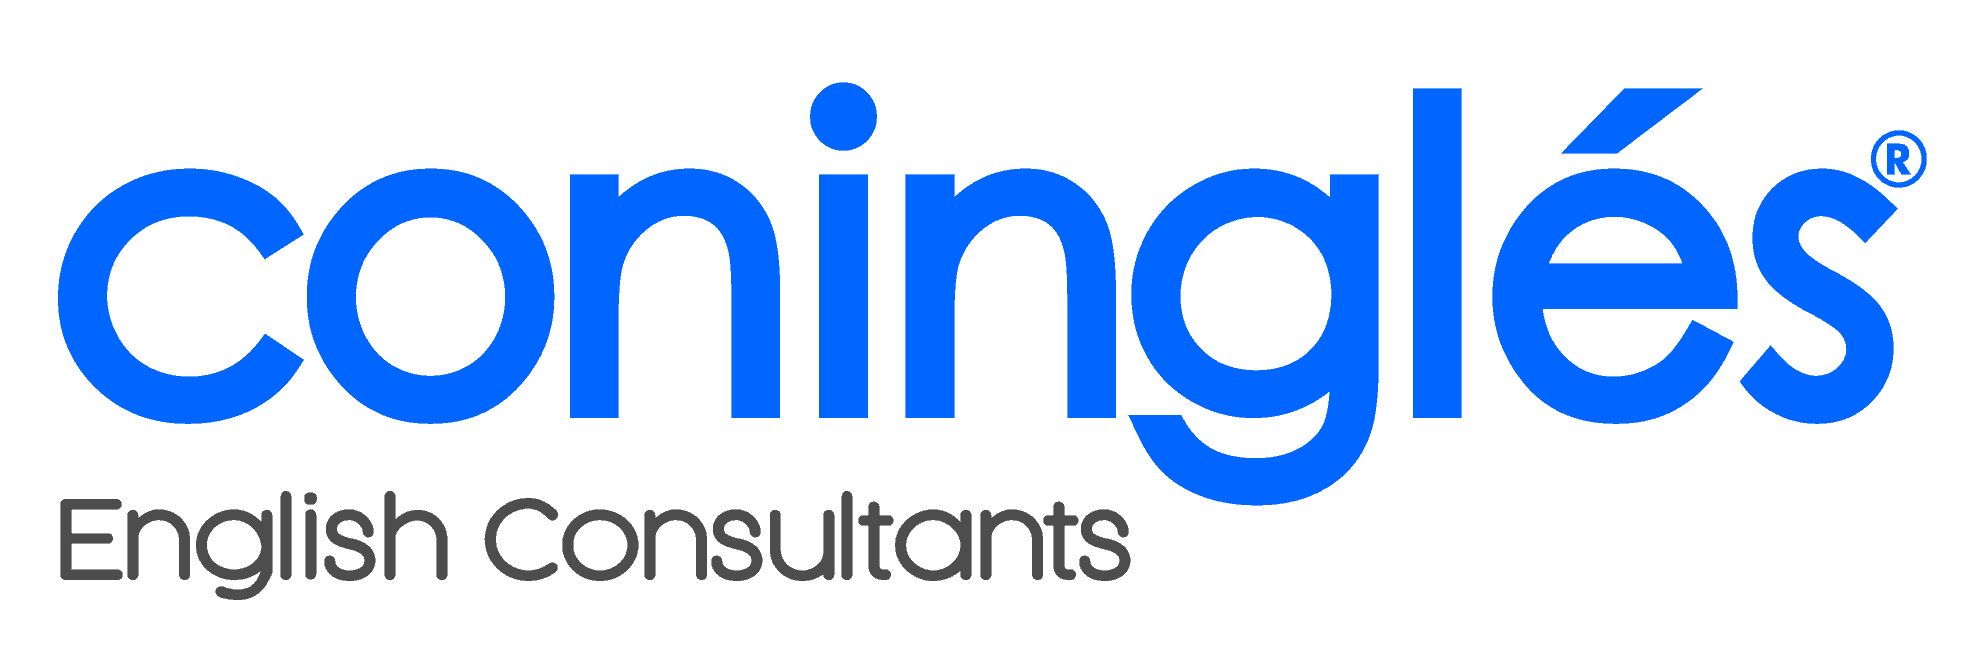 logo-english-consultants